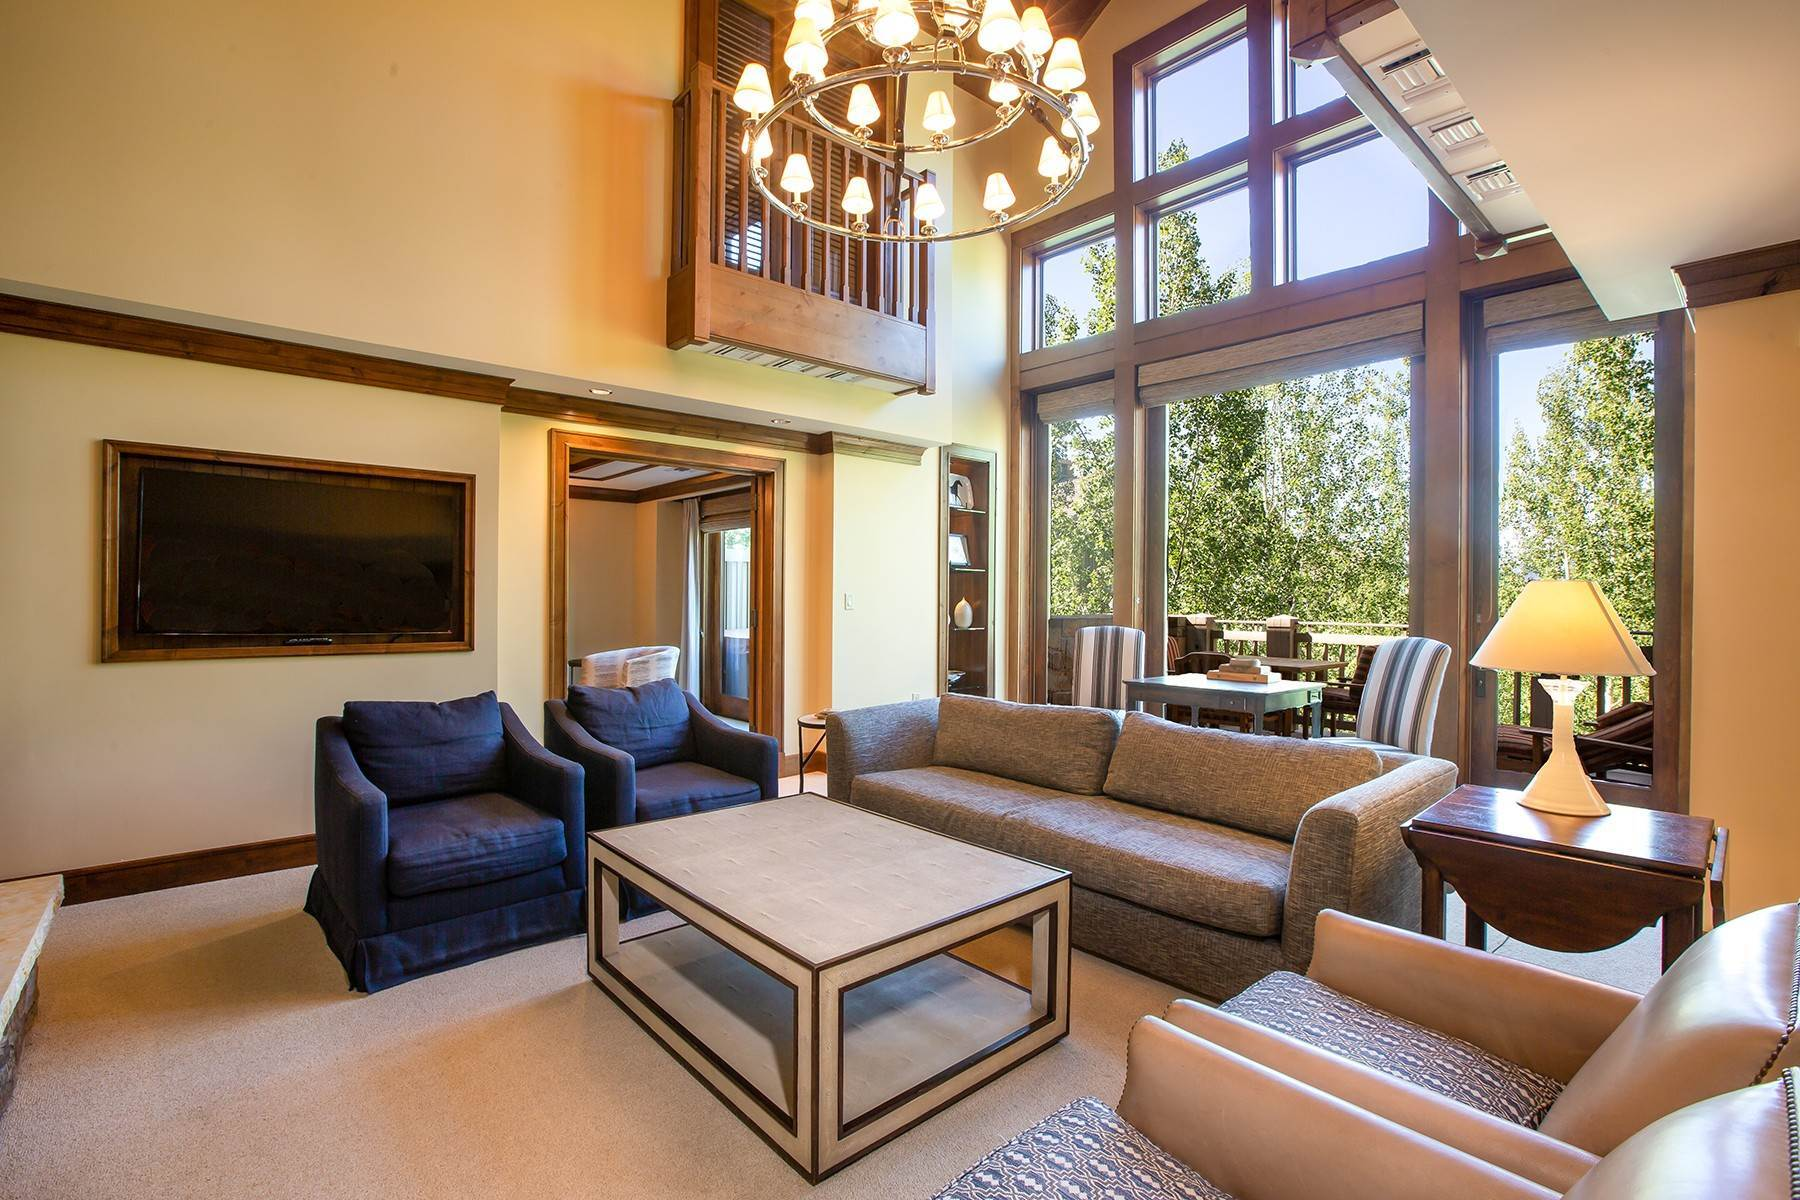 Condominiums for Sale at Four Seasons Private Residence Rarely Offered Luxury Condo 7680 N Granite Loop Rd, #877 Teton Village, Wyoming 83025 United States